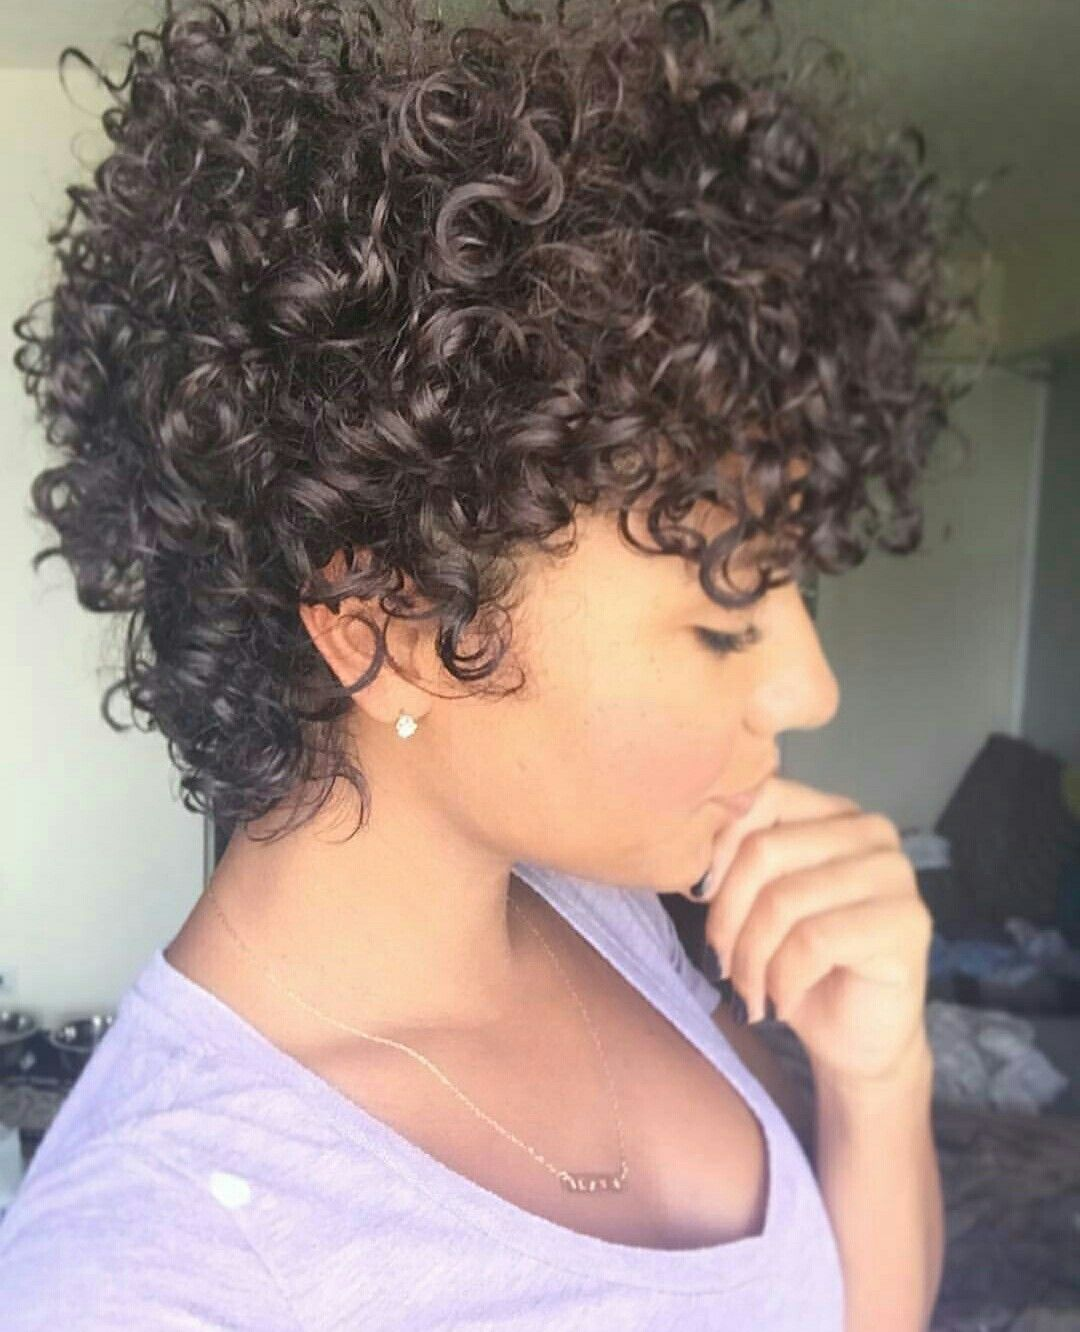 Short Hair Perm Flhairbylo Avedaibw Inspo Curly Hair Styles Curly Hair Styles Naturally Curly Natural Curls